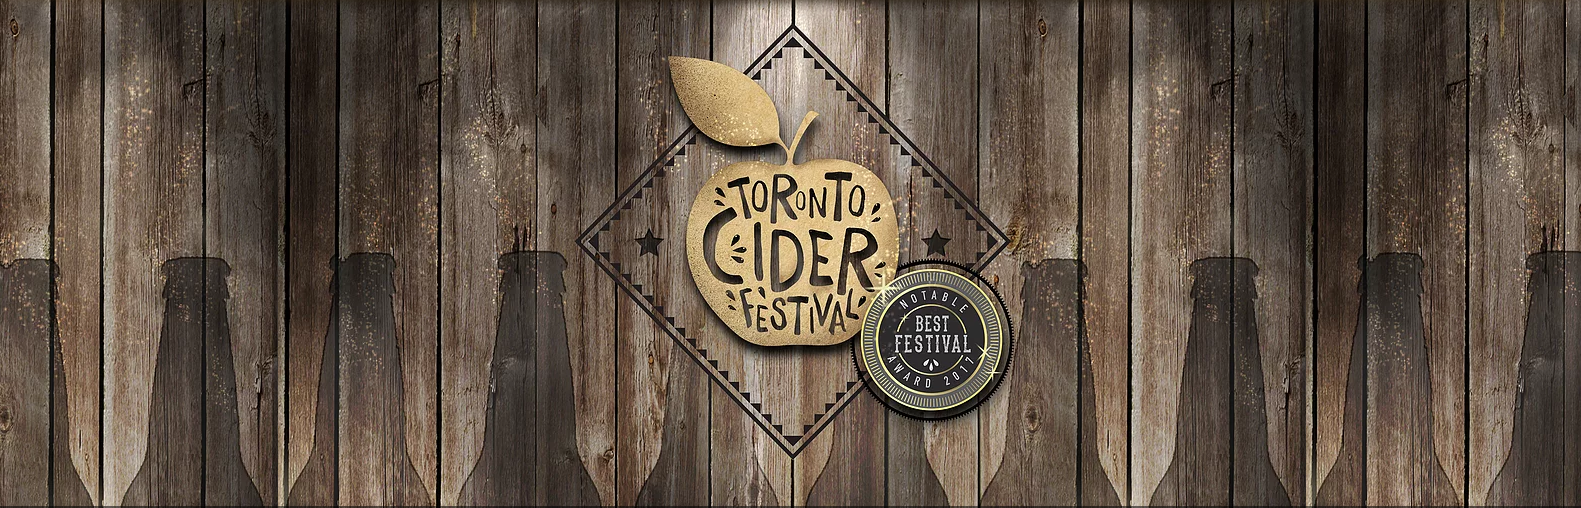 (taken from torontociderfestival.com)